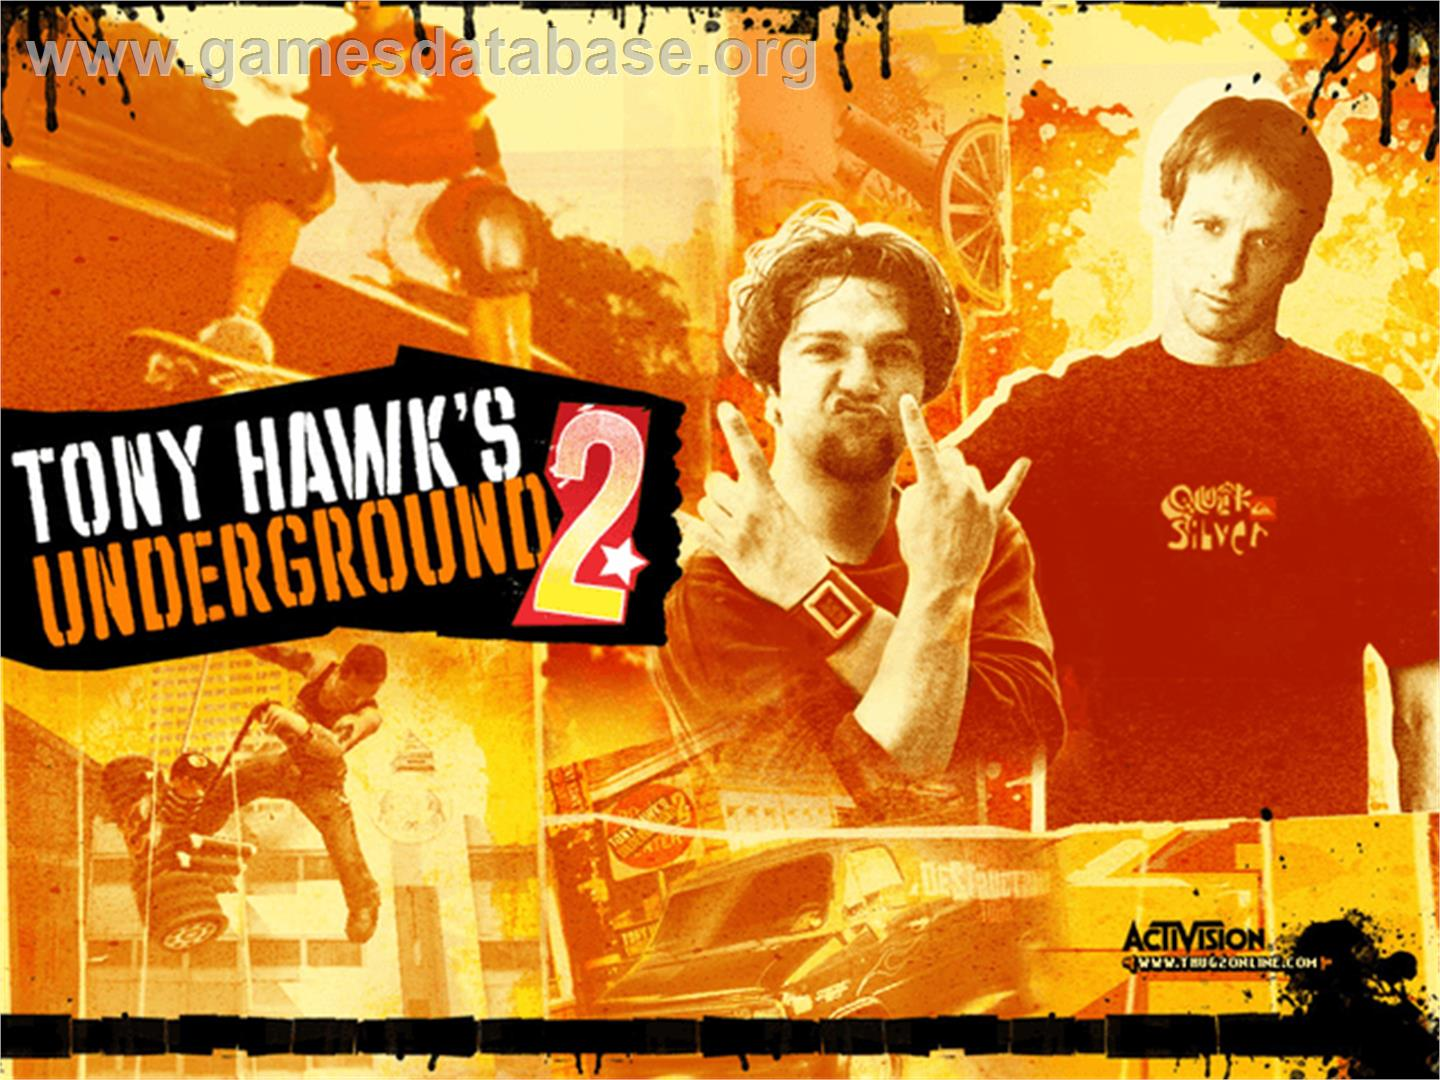 Tony Hawk's Underground 2 - Microsoft Xbox - Artwork - Title Screen